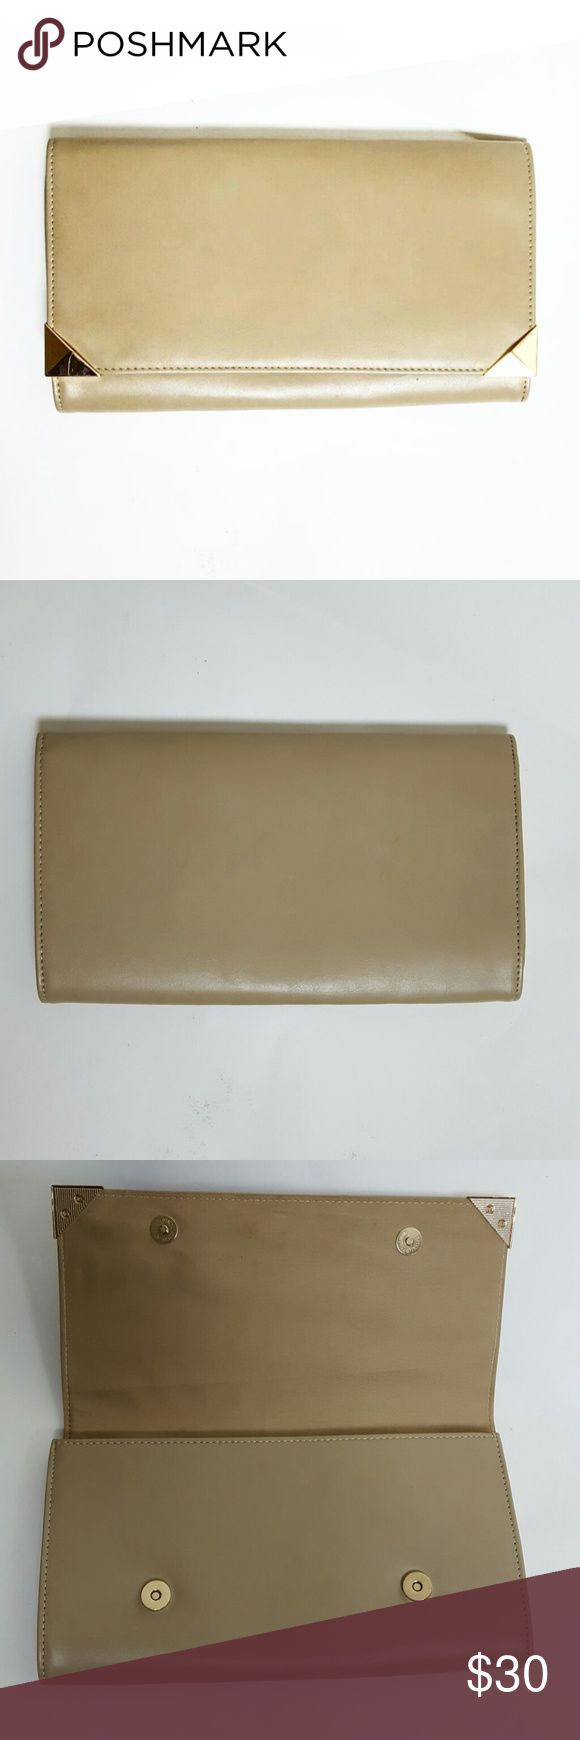 Boohoo Nude Clutch Nude clutch with gold accents. In great condition! Purchase at listed price to receive a FREE GIFT! Any questions? Feel free to ask. Happy Poshing! 😊 Boohoo Bags Clutches & Wristlets